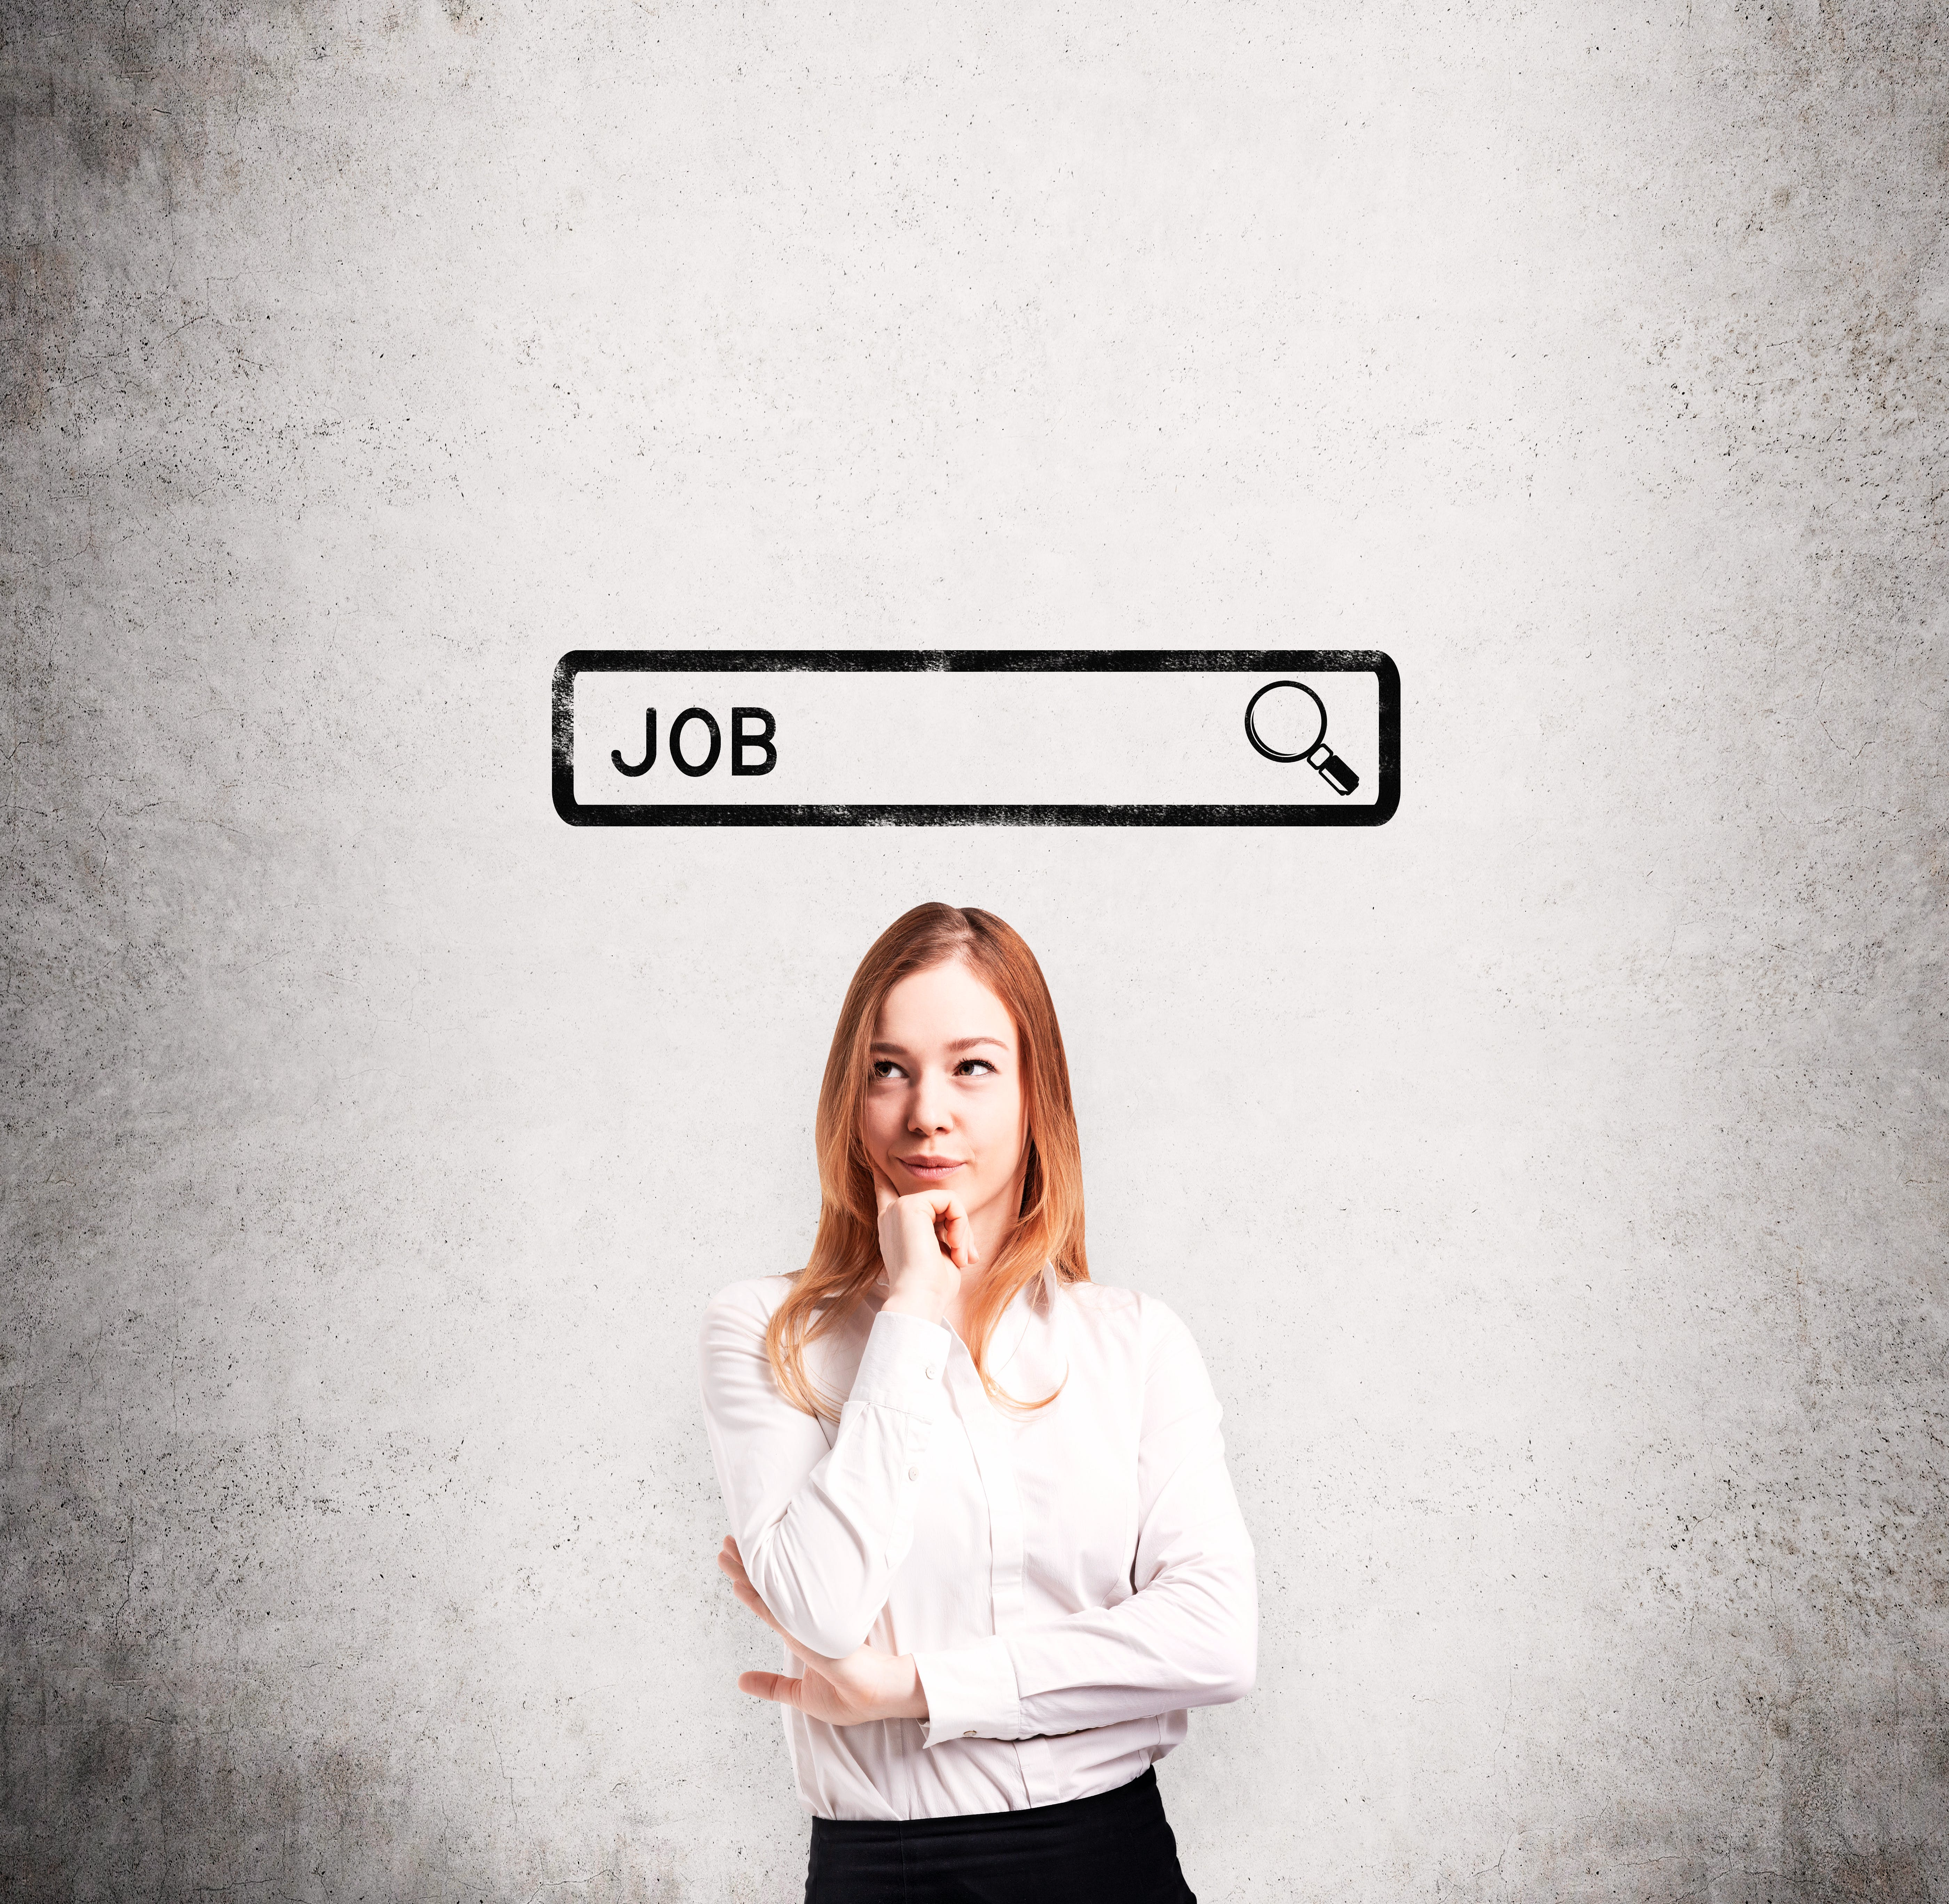 Make your scroll productive by following online job-hunting resources.